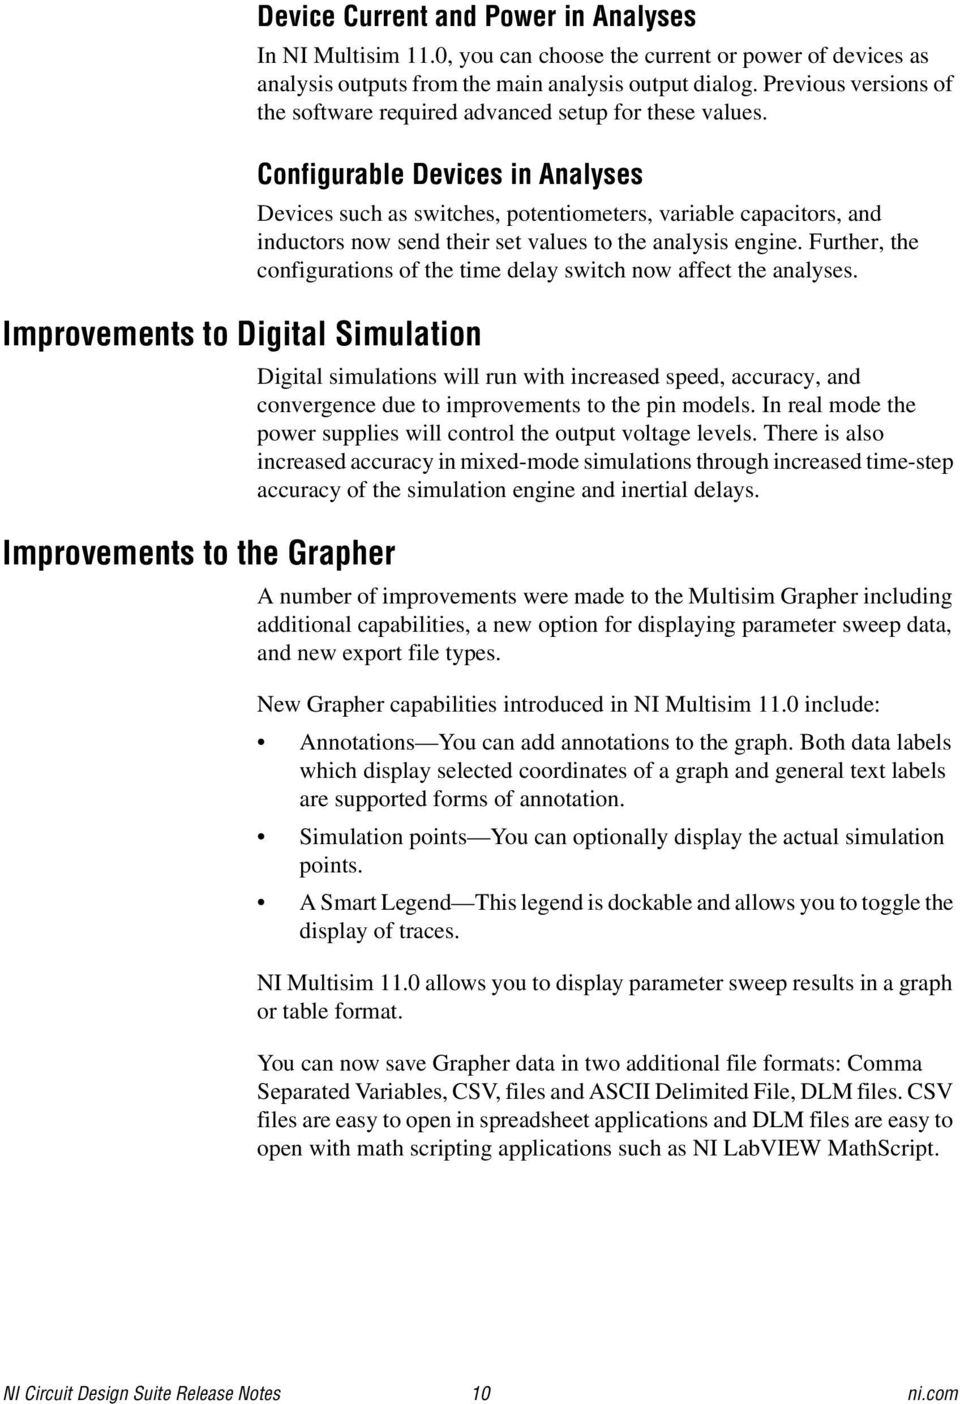 Ni Circuit Design Suite Pdf Your Own Multisim Like And Simulation Application Configurable Devices In Analyses Improvements To Digital The Grapher Such As Switches